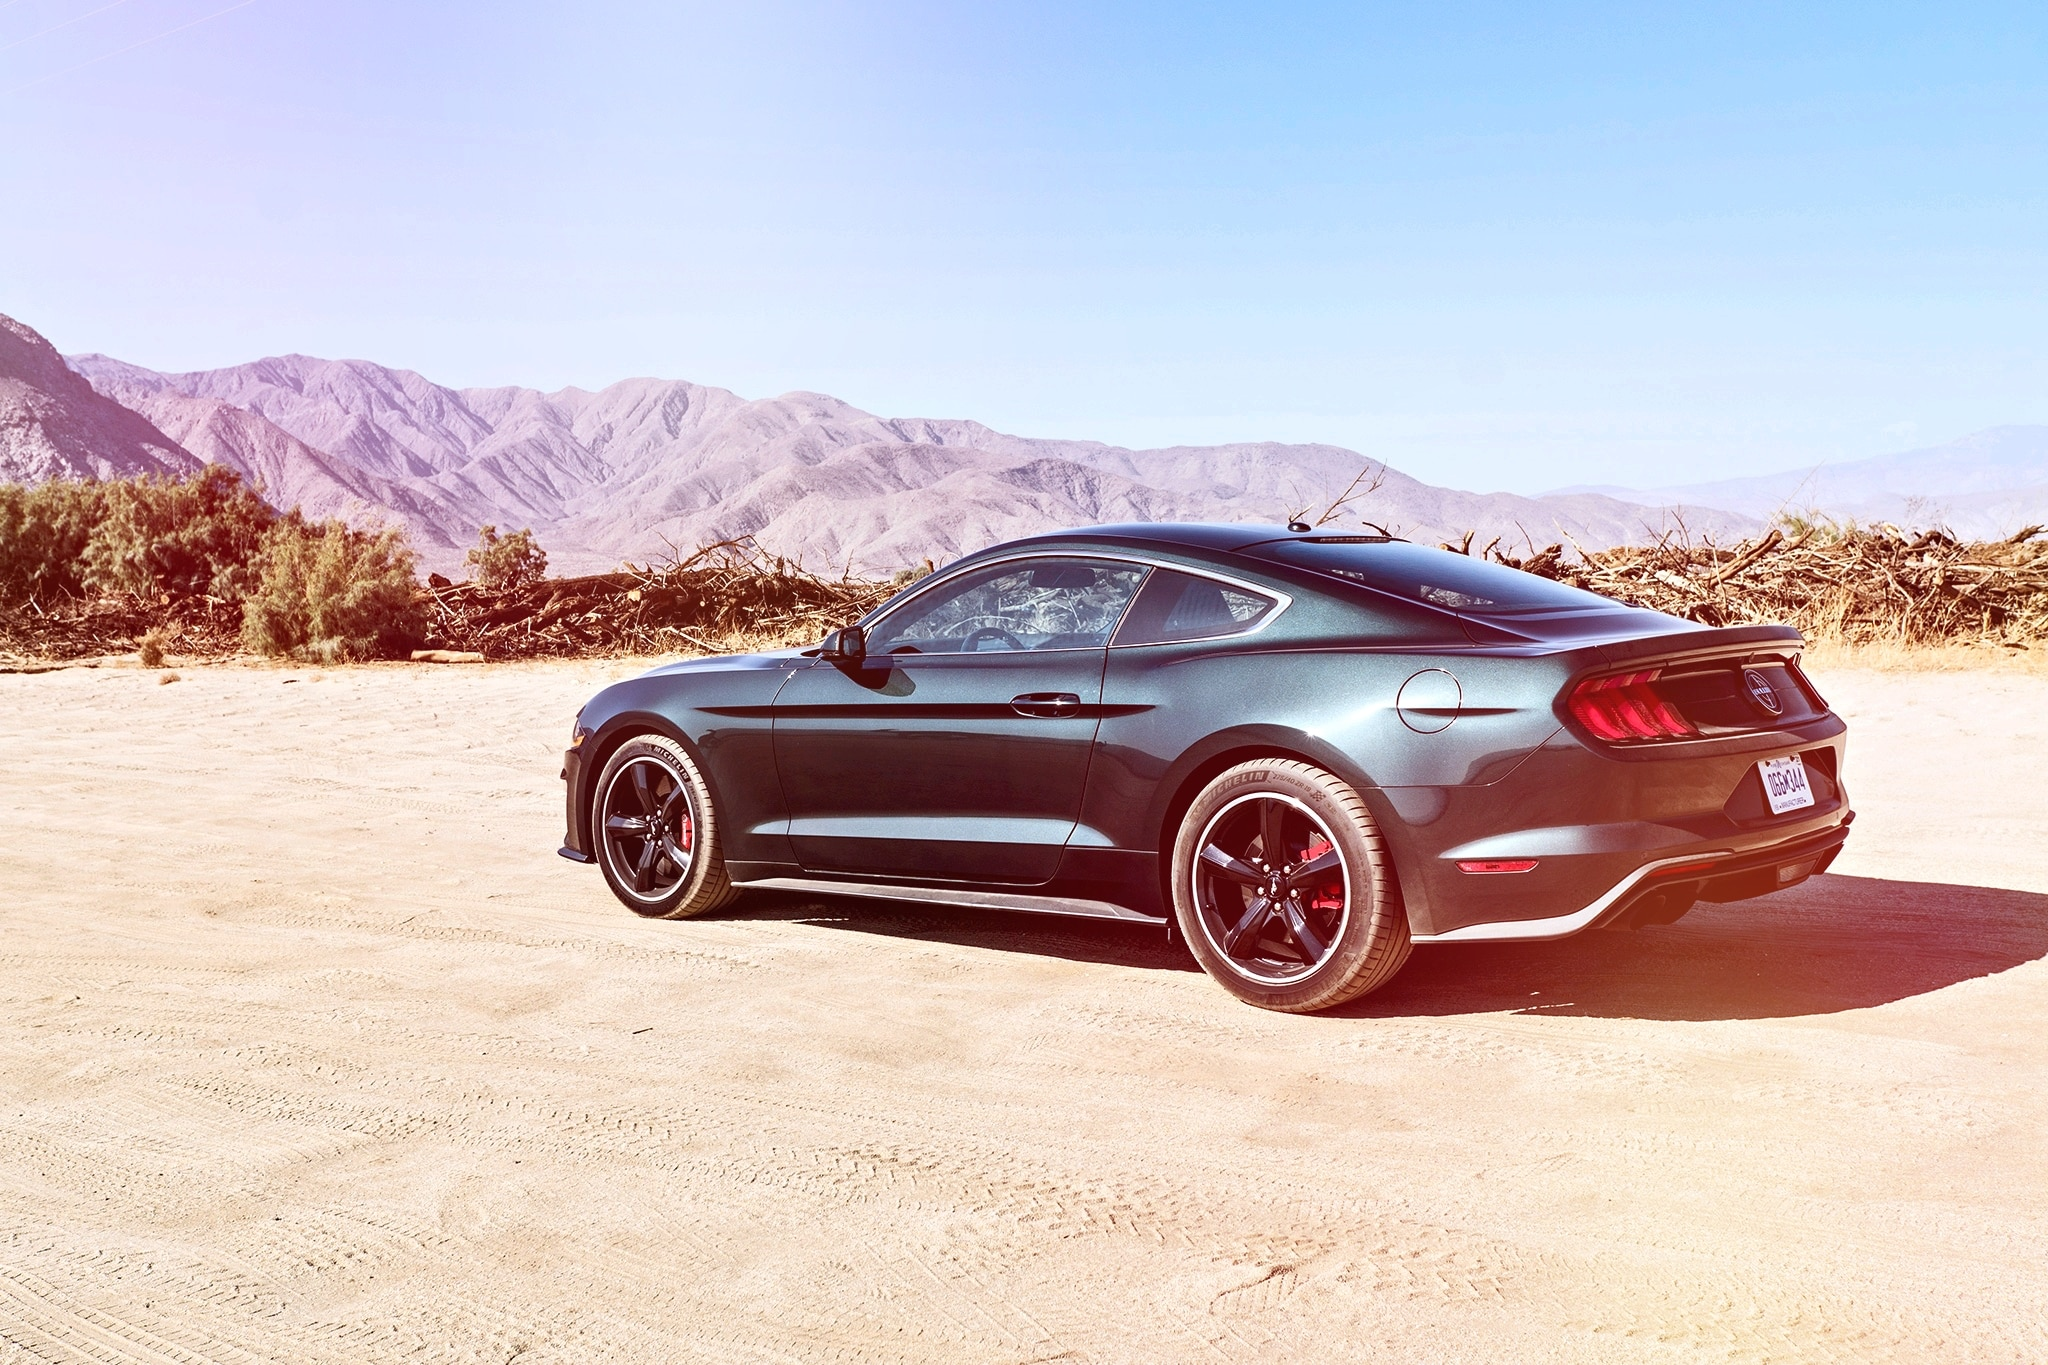 2019 Ford Mustang Bullitt: We Escape L.A. and Head to the Desert | Automobile Magazine